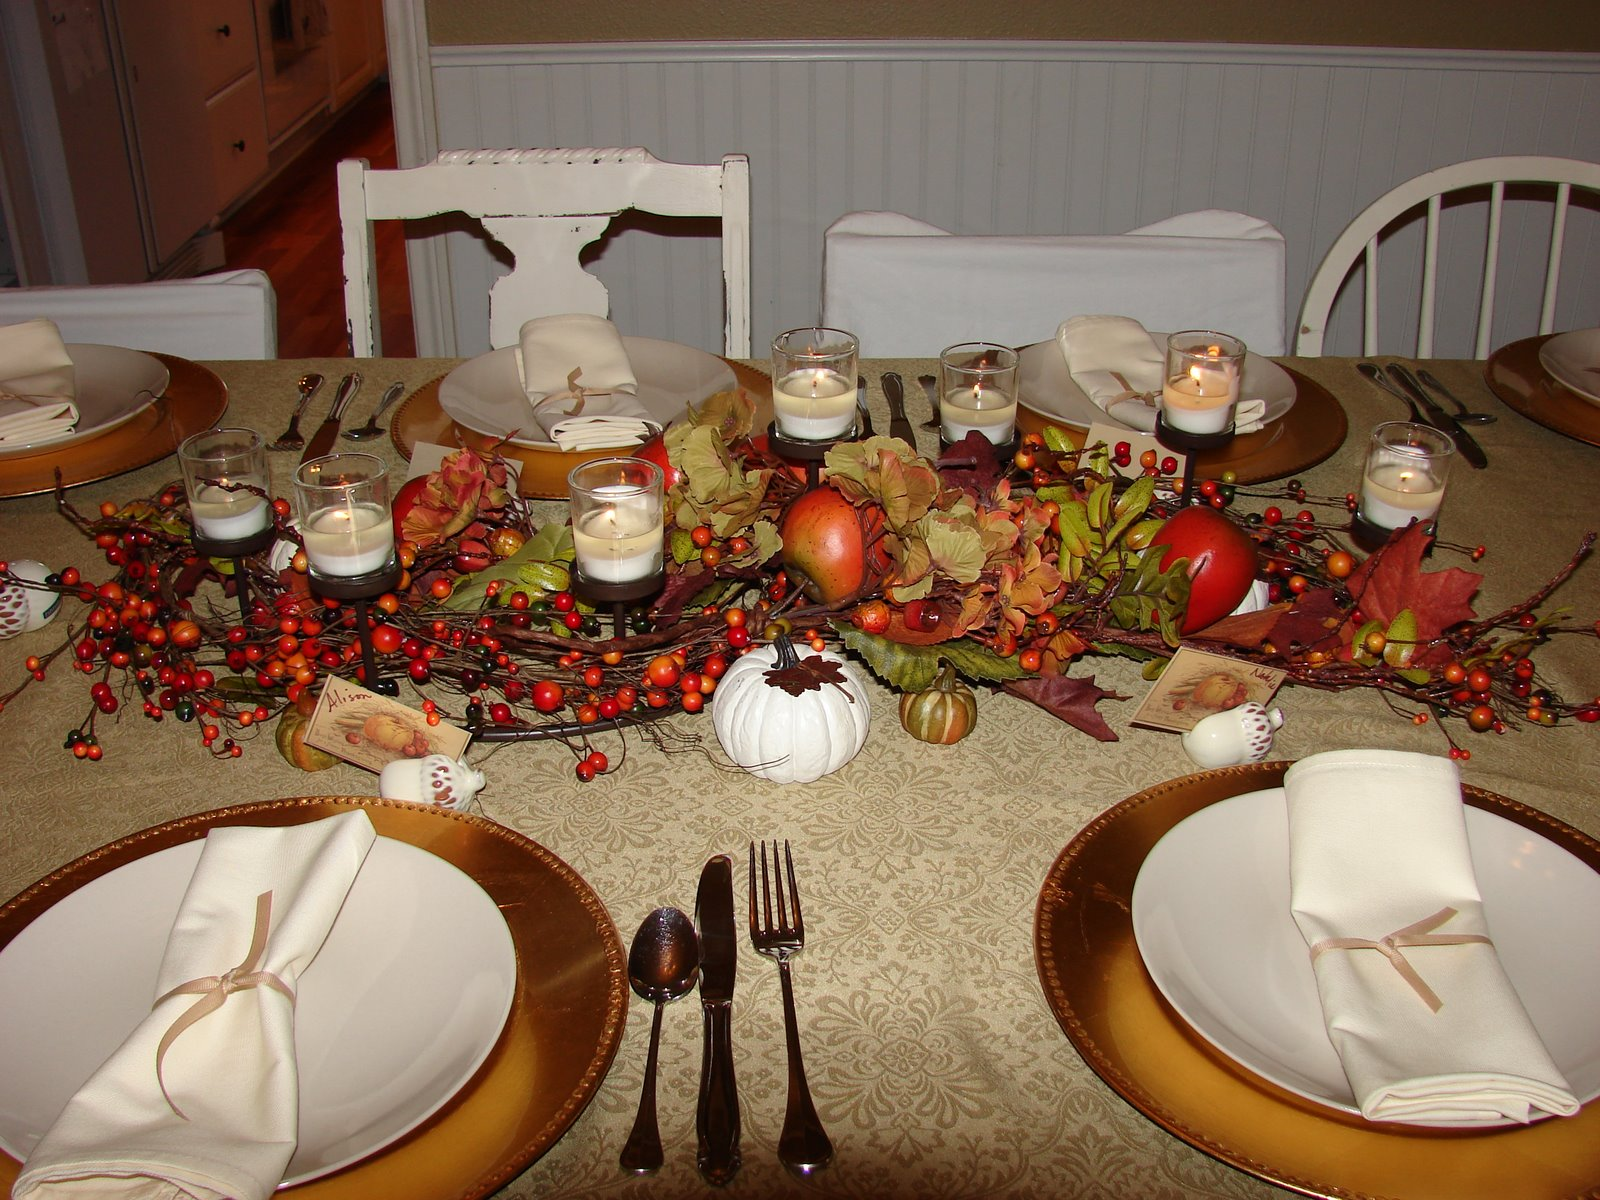 Whistlestop Cafe Cooking Centerpiece Of The Month November